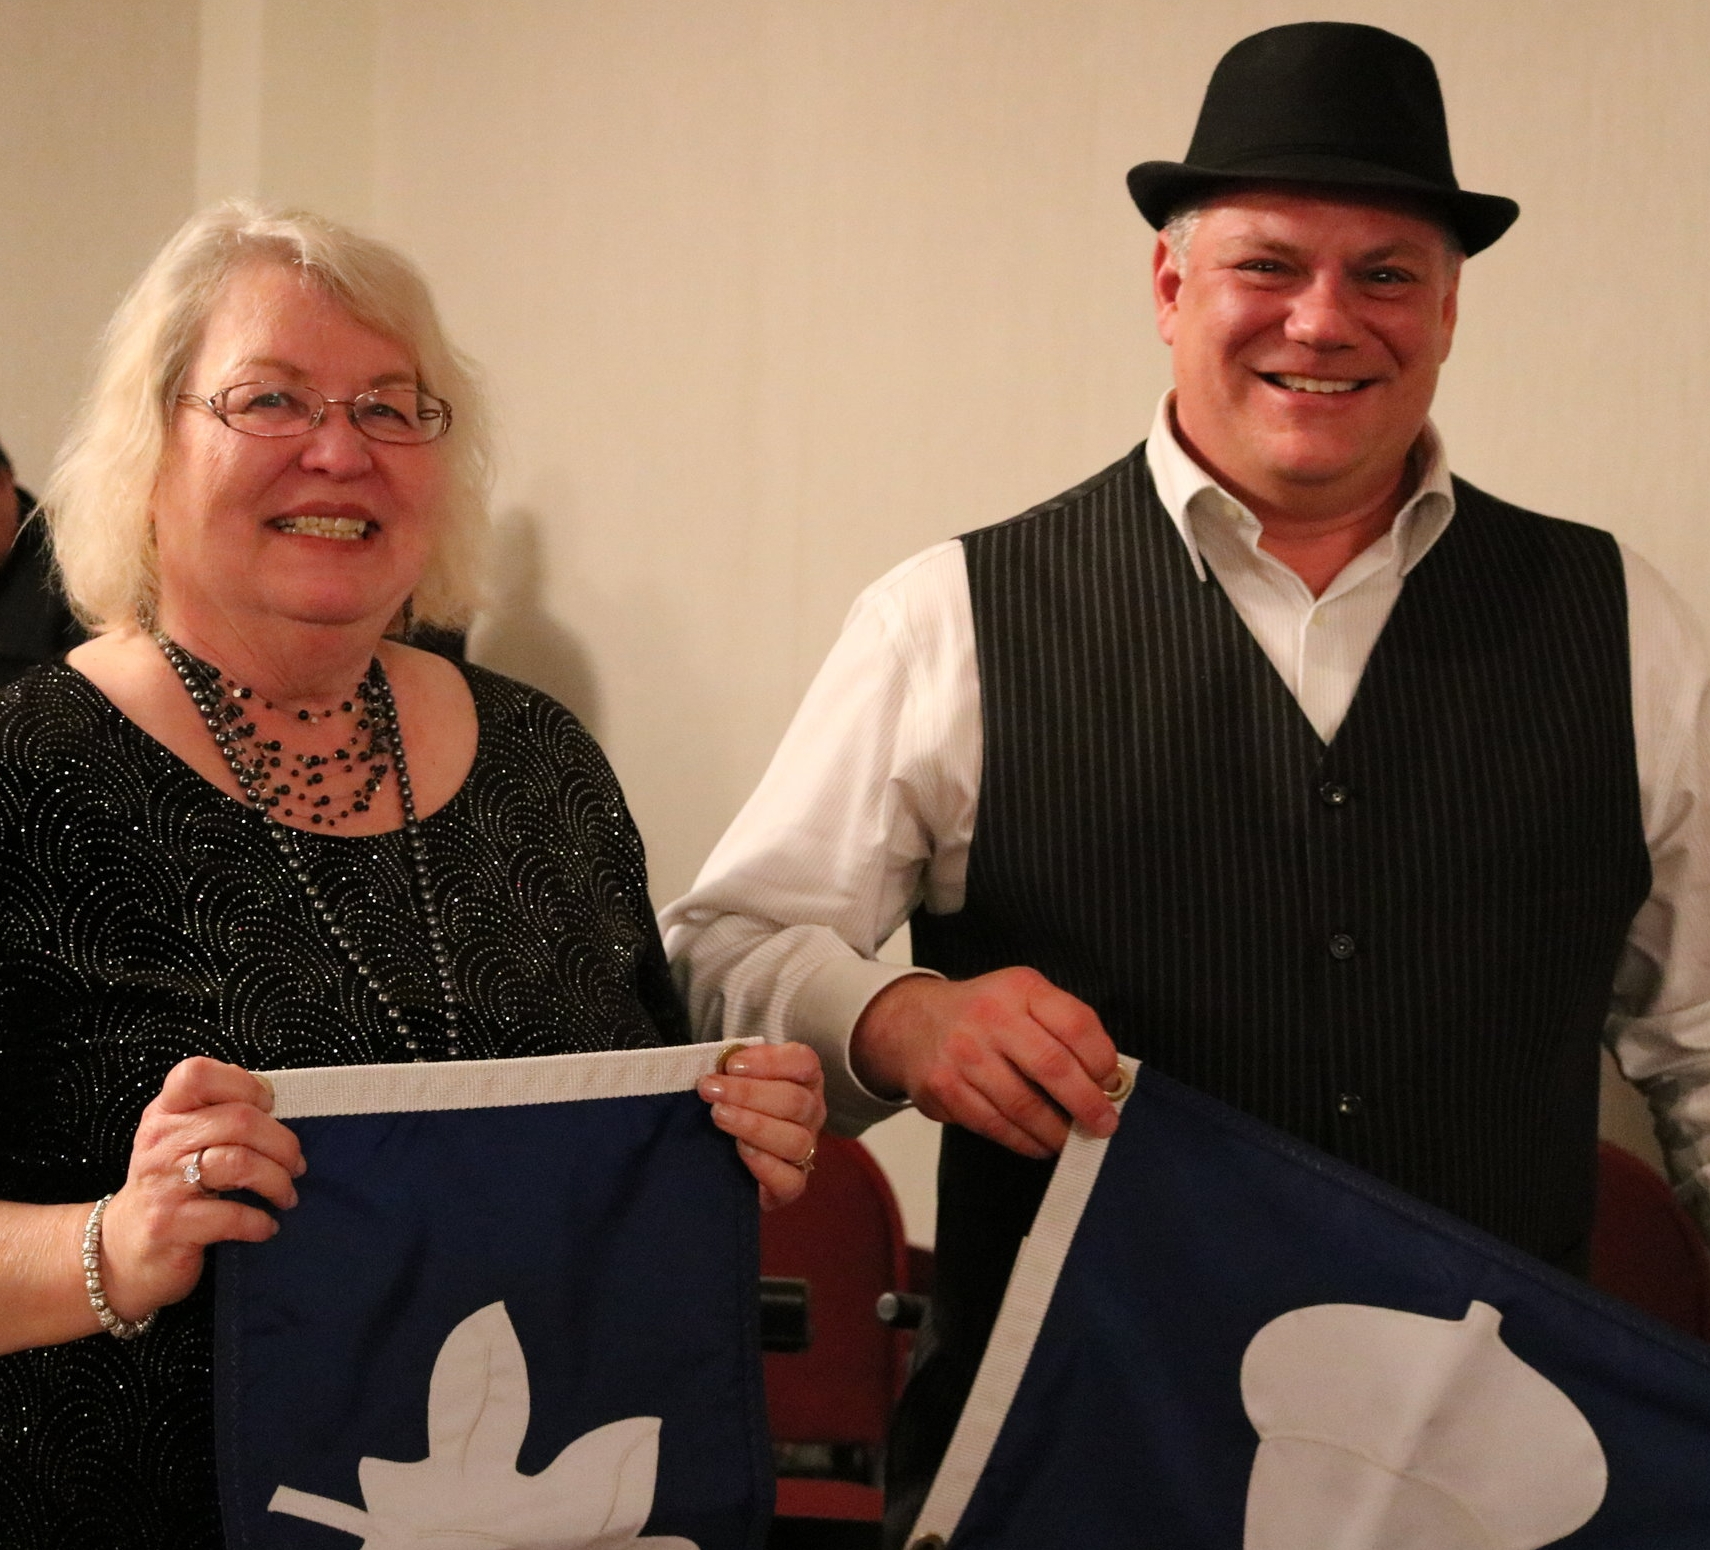 Commodore Don Petsch recognized 2018 Staff Officers Janice Hearst (L) as returning Secretary and Pete Rao as incoming Treasurer.